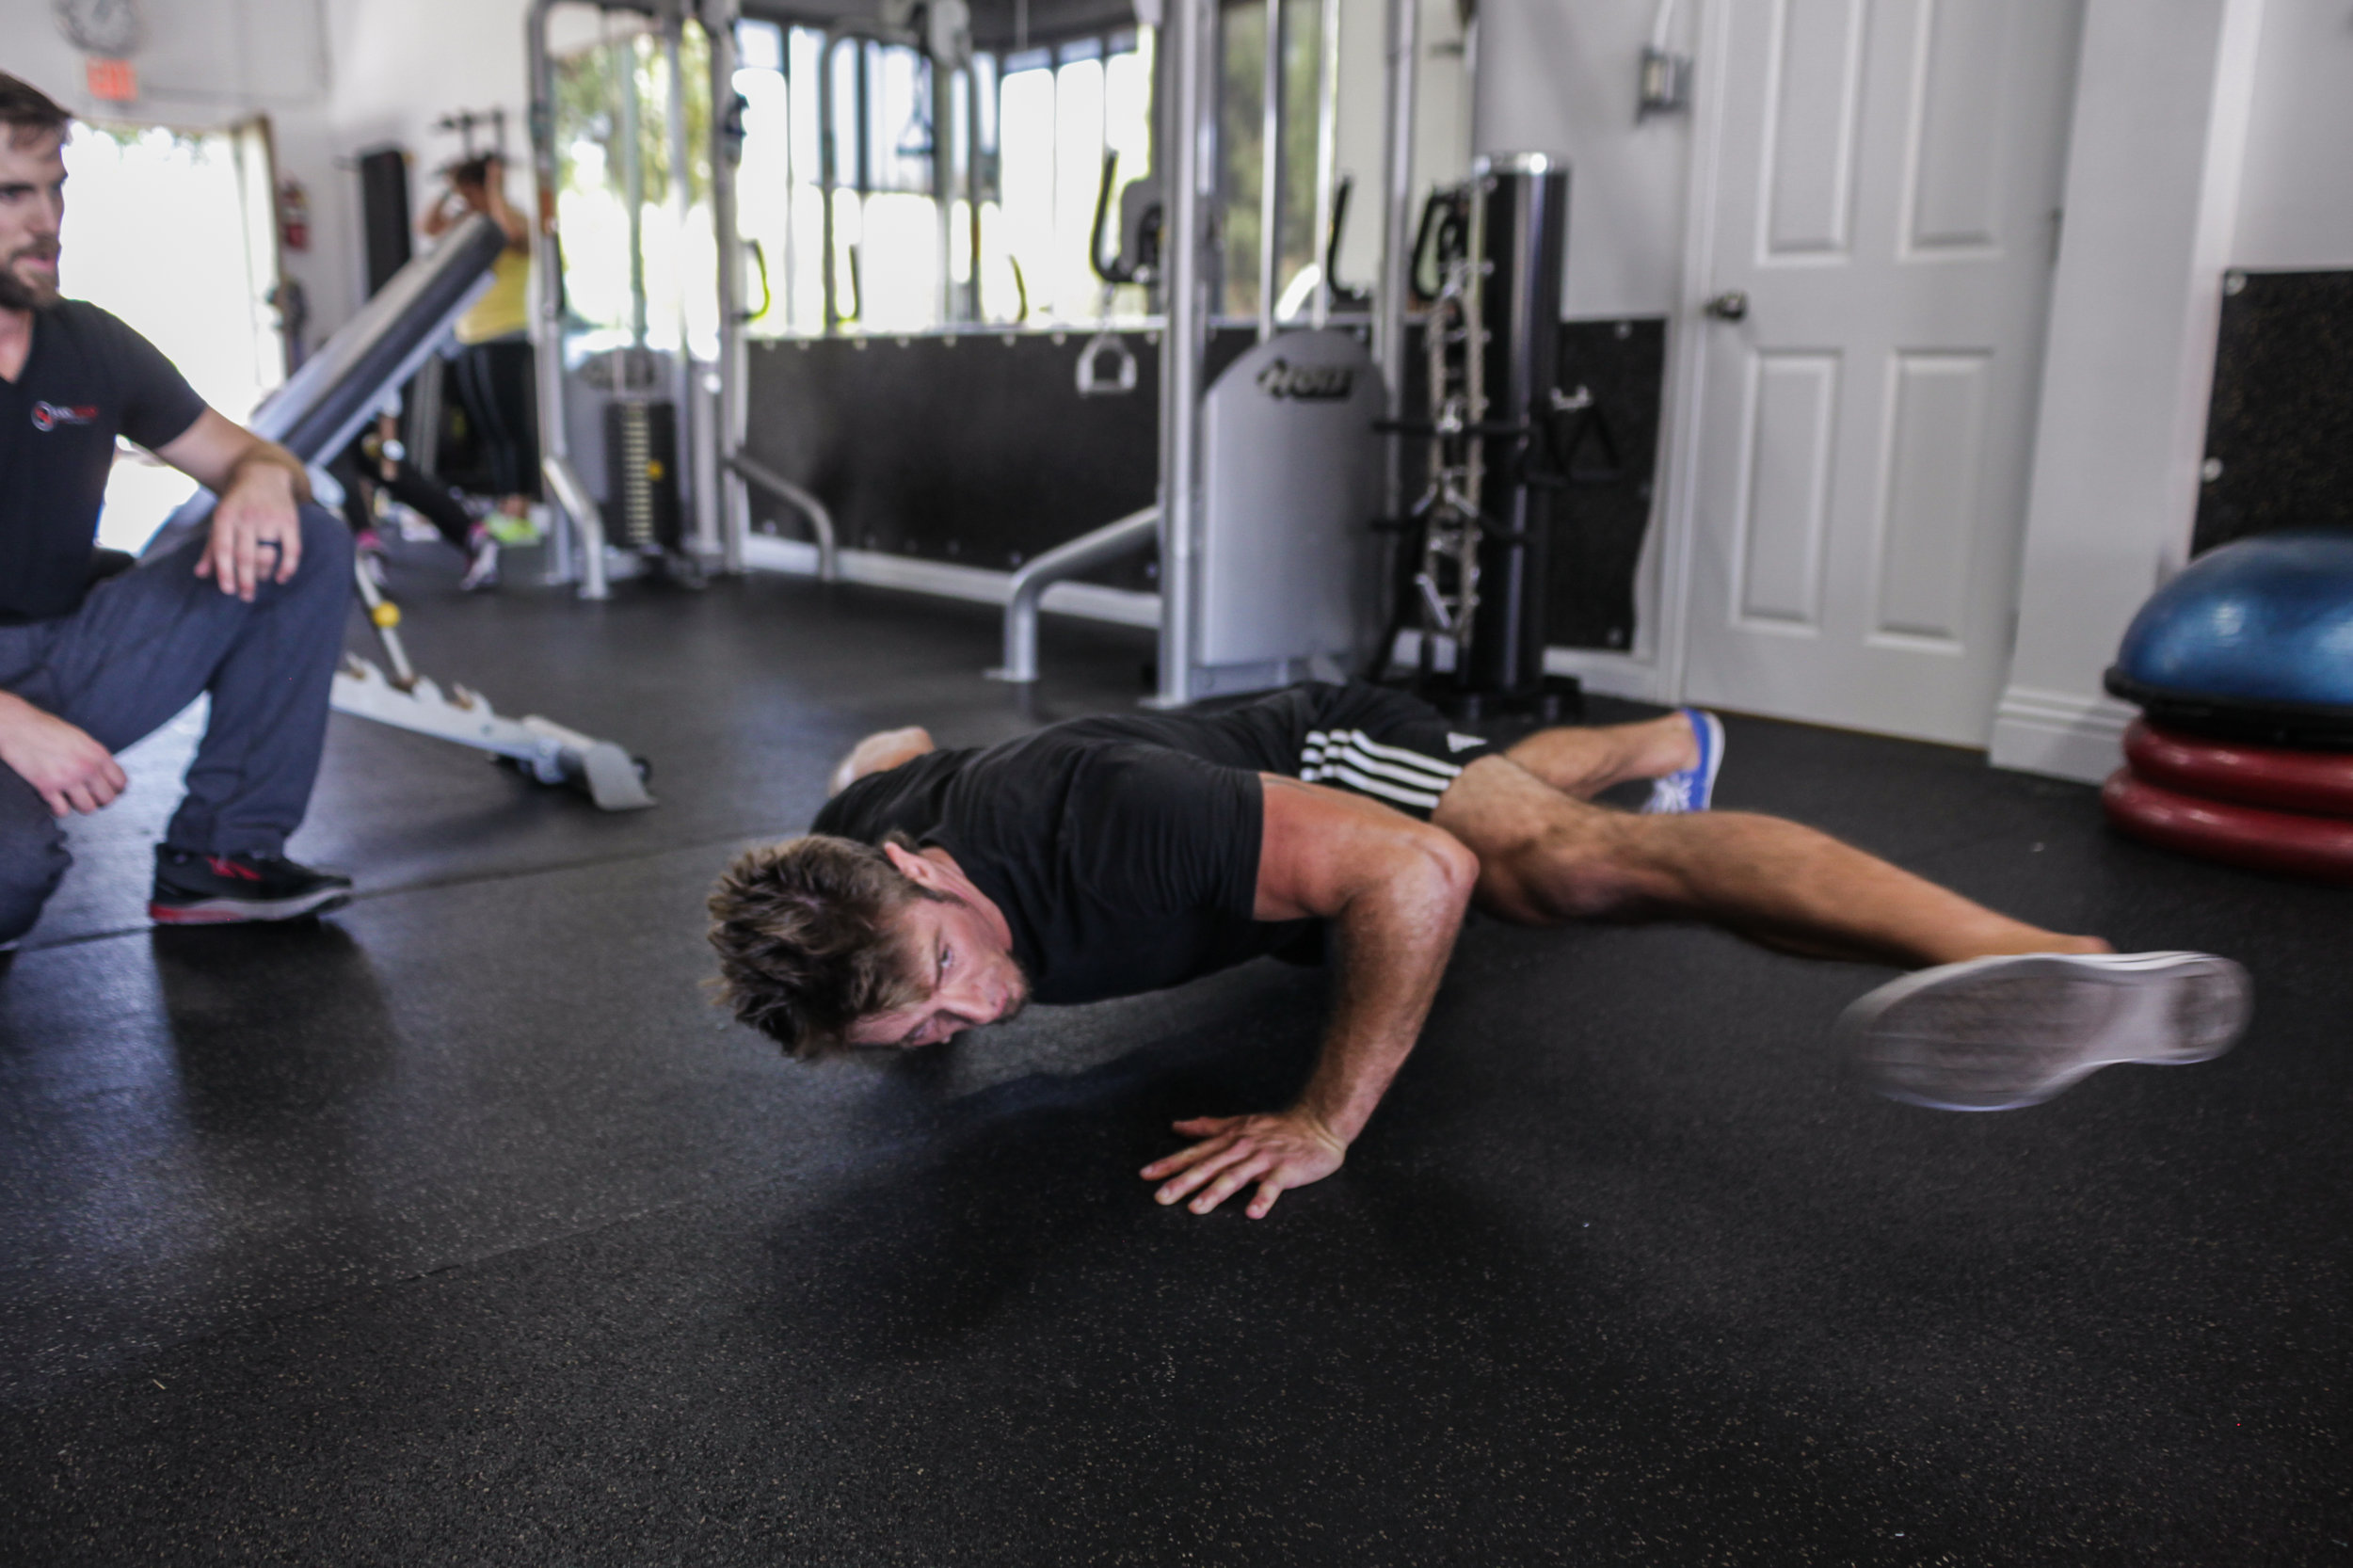 h.i.i.t. workouts - High-Intensity Interval Training is hugely effective, praised by fitness experts, and is again on the list of Hottest Predicted Fitness Trends for 2019.